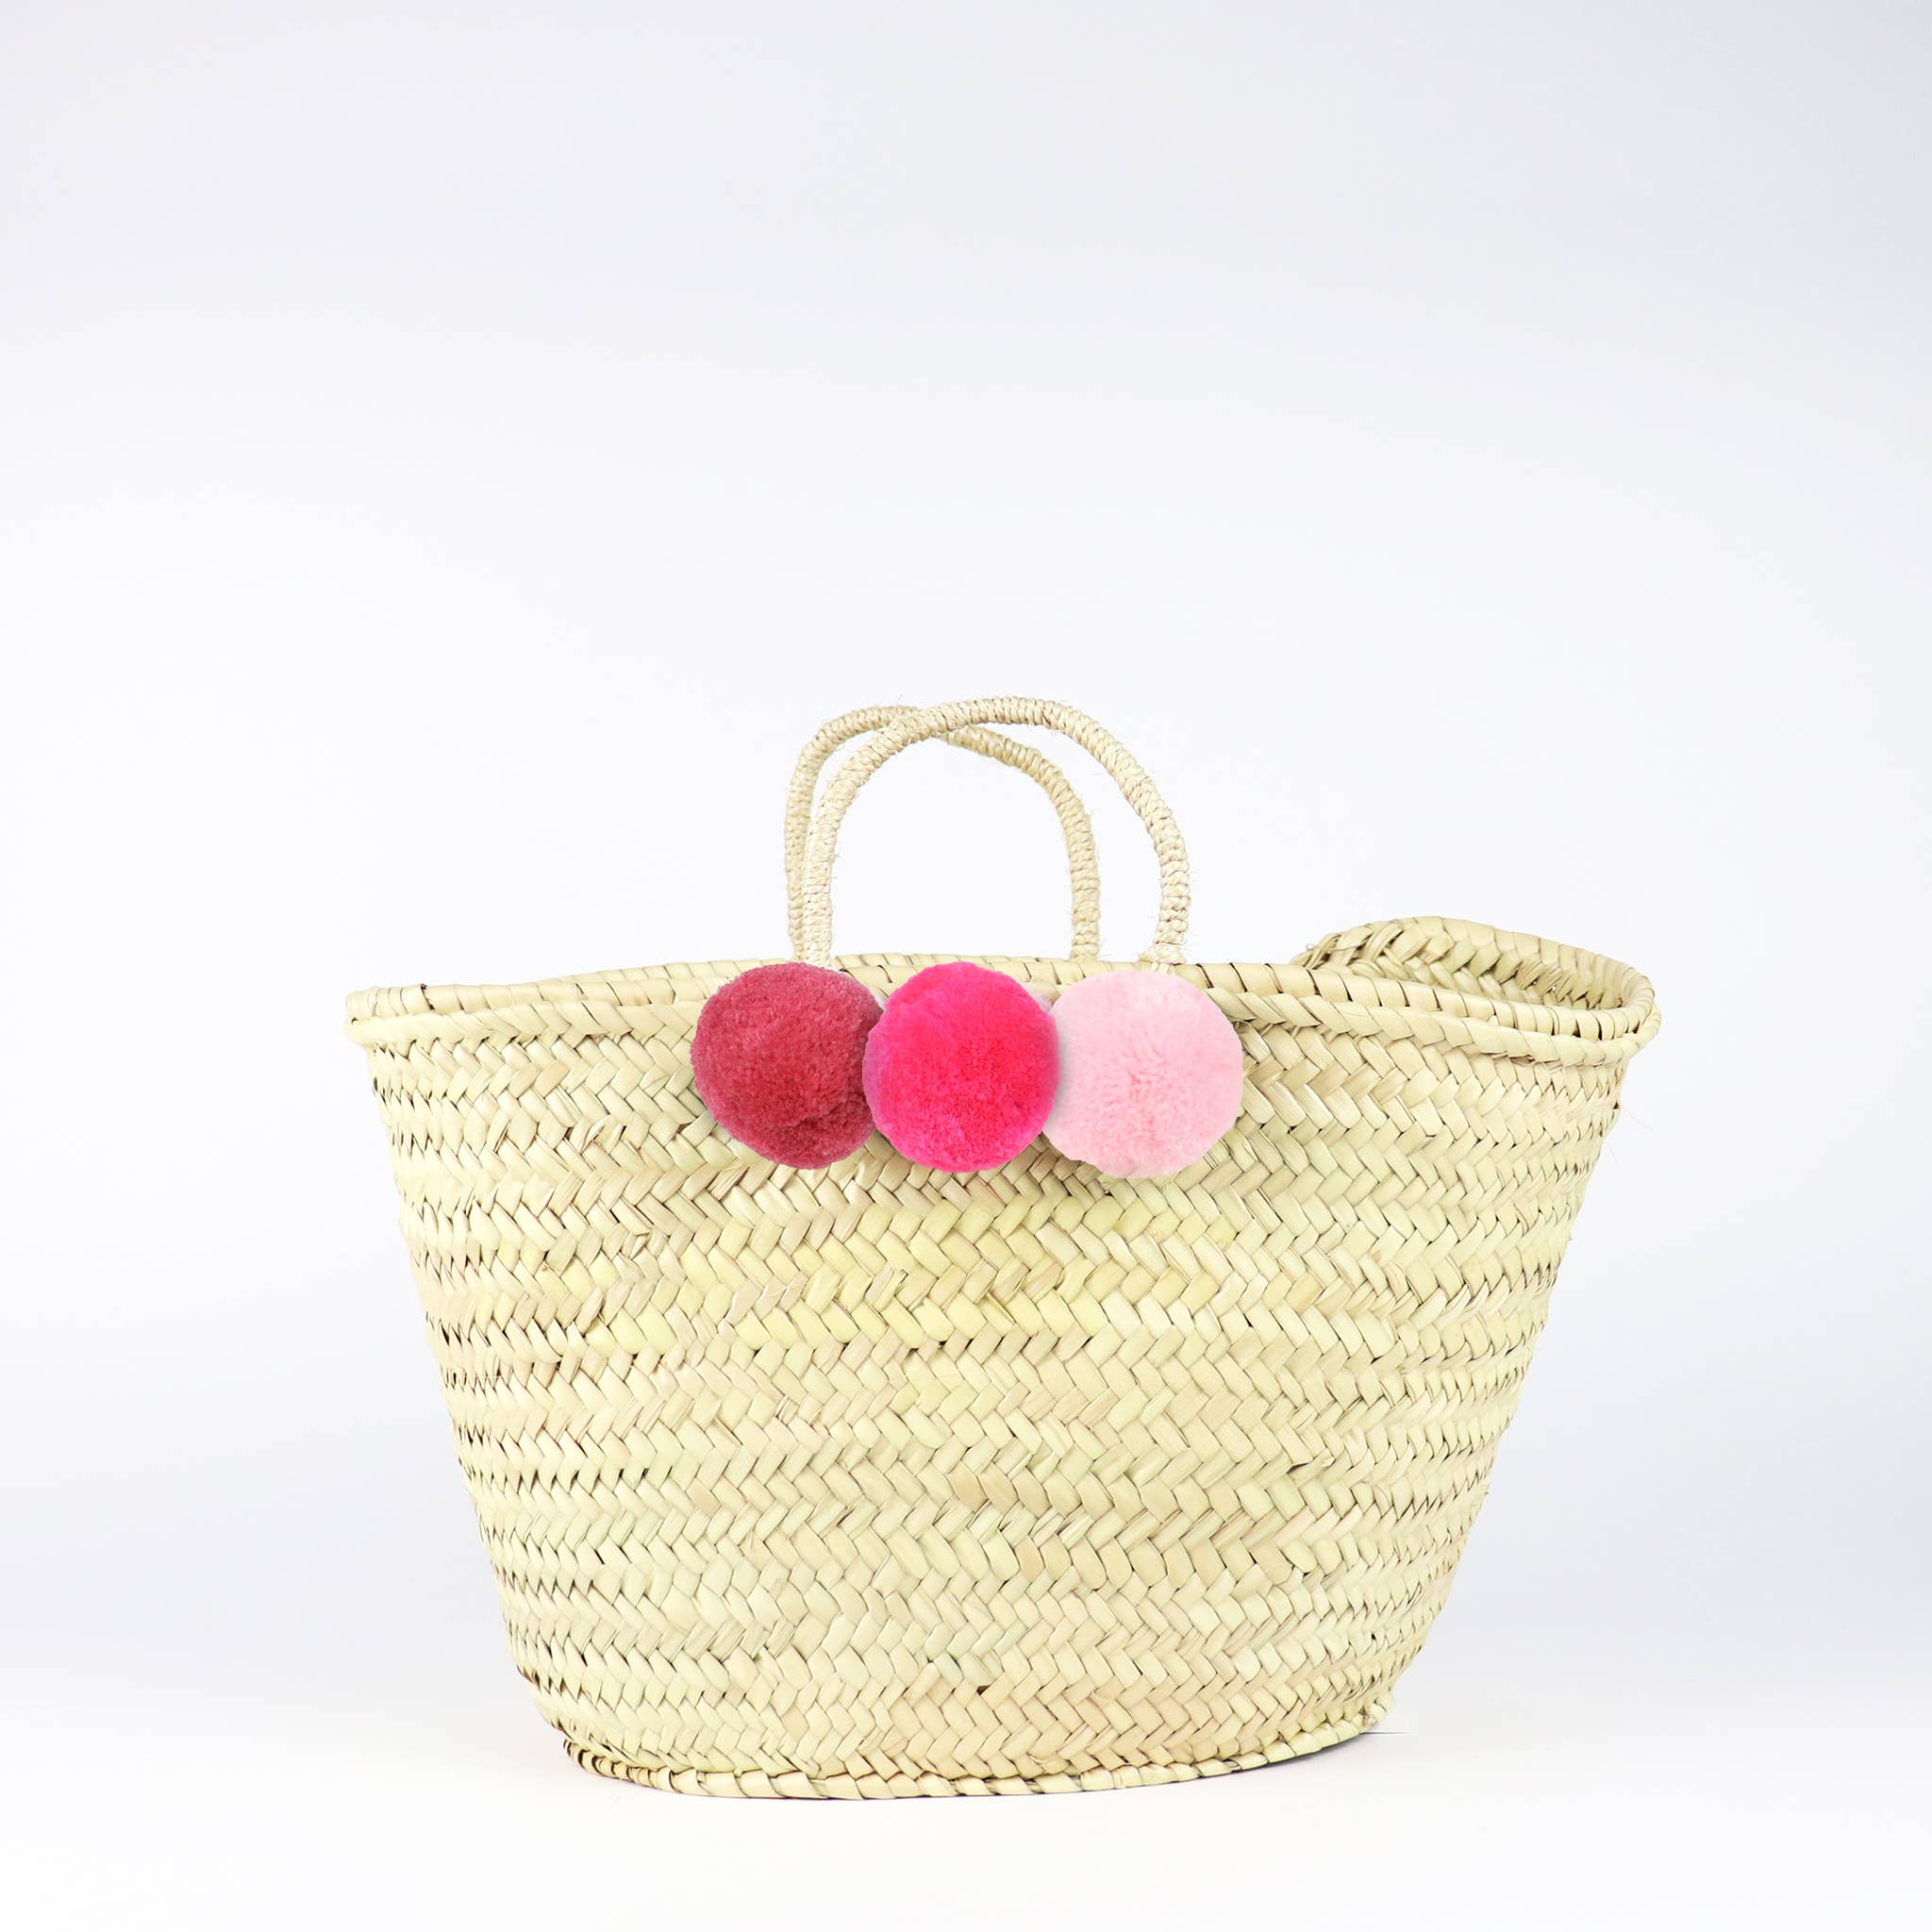 Wheat MIXED POM POM Straw Basket Bag - MEDIUM